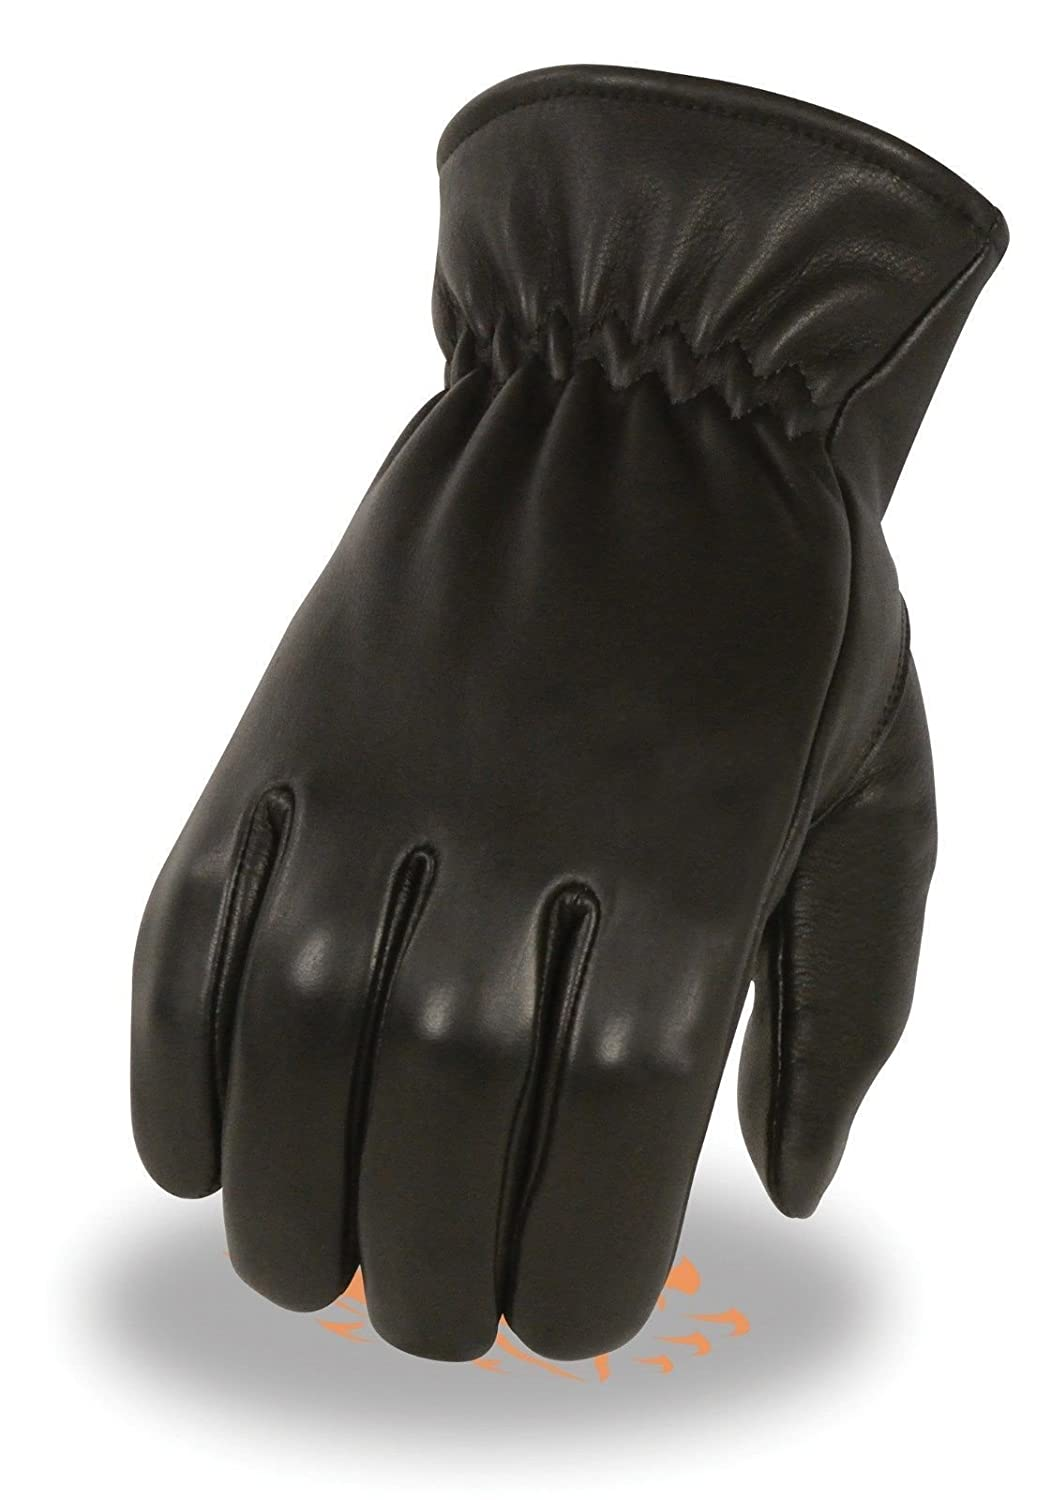 MEN'S THERMAL LINED VERY WARM & SOFT DEER SKIN LEATHER GLOVES WITH CINCH WRIST Unbranded